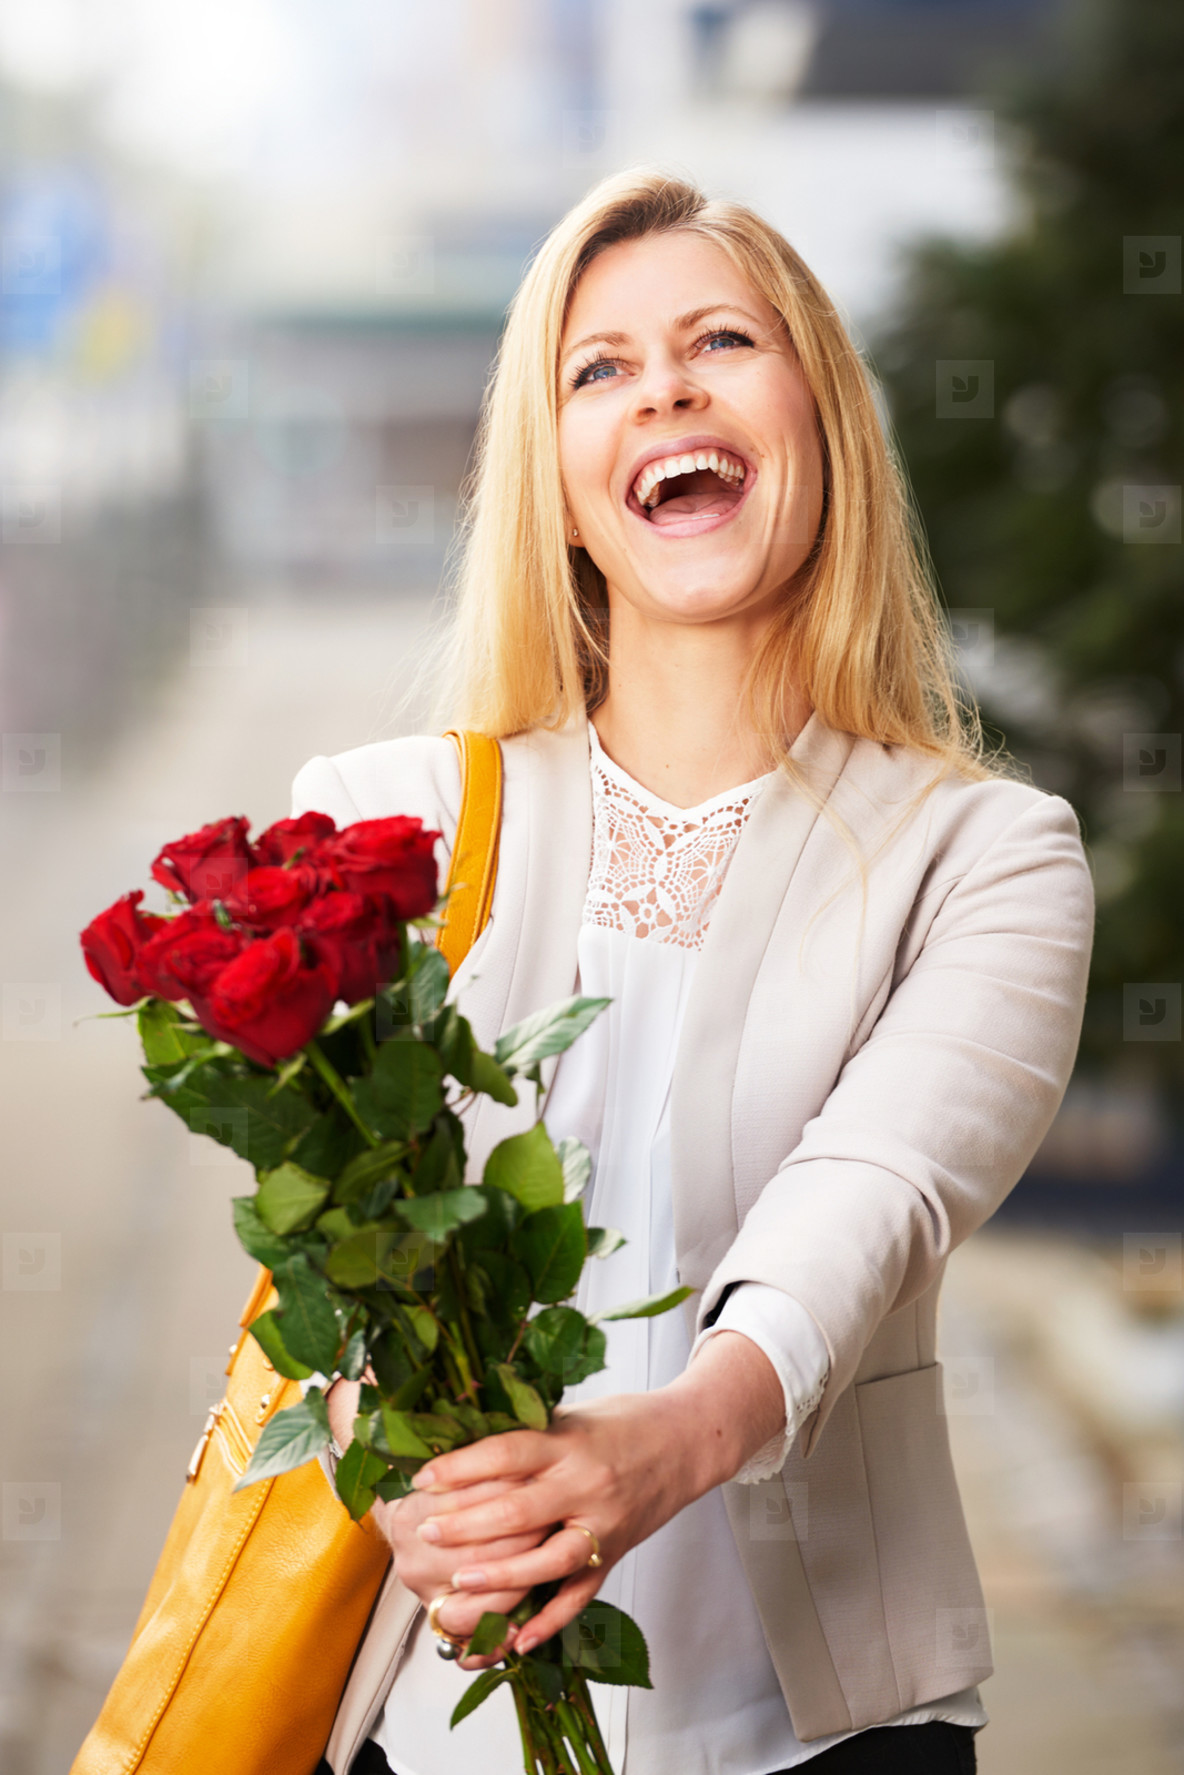 Professional woman with head tilted holding roses